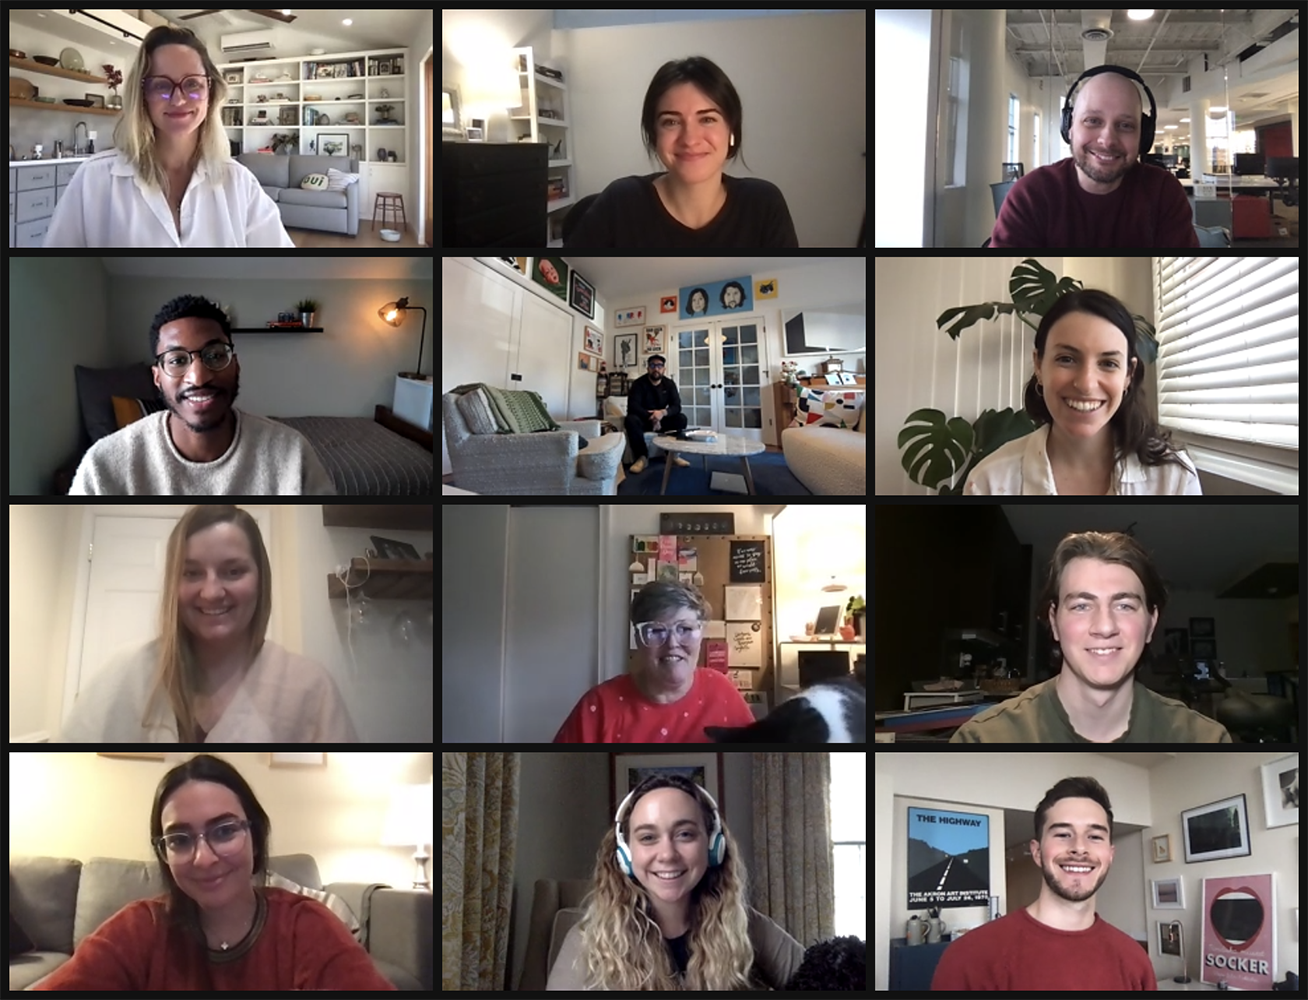 A screenshot of the Zoom call with the DoorDash client and Brandcenter winners.